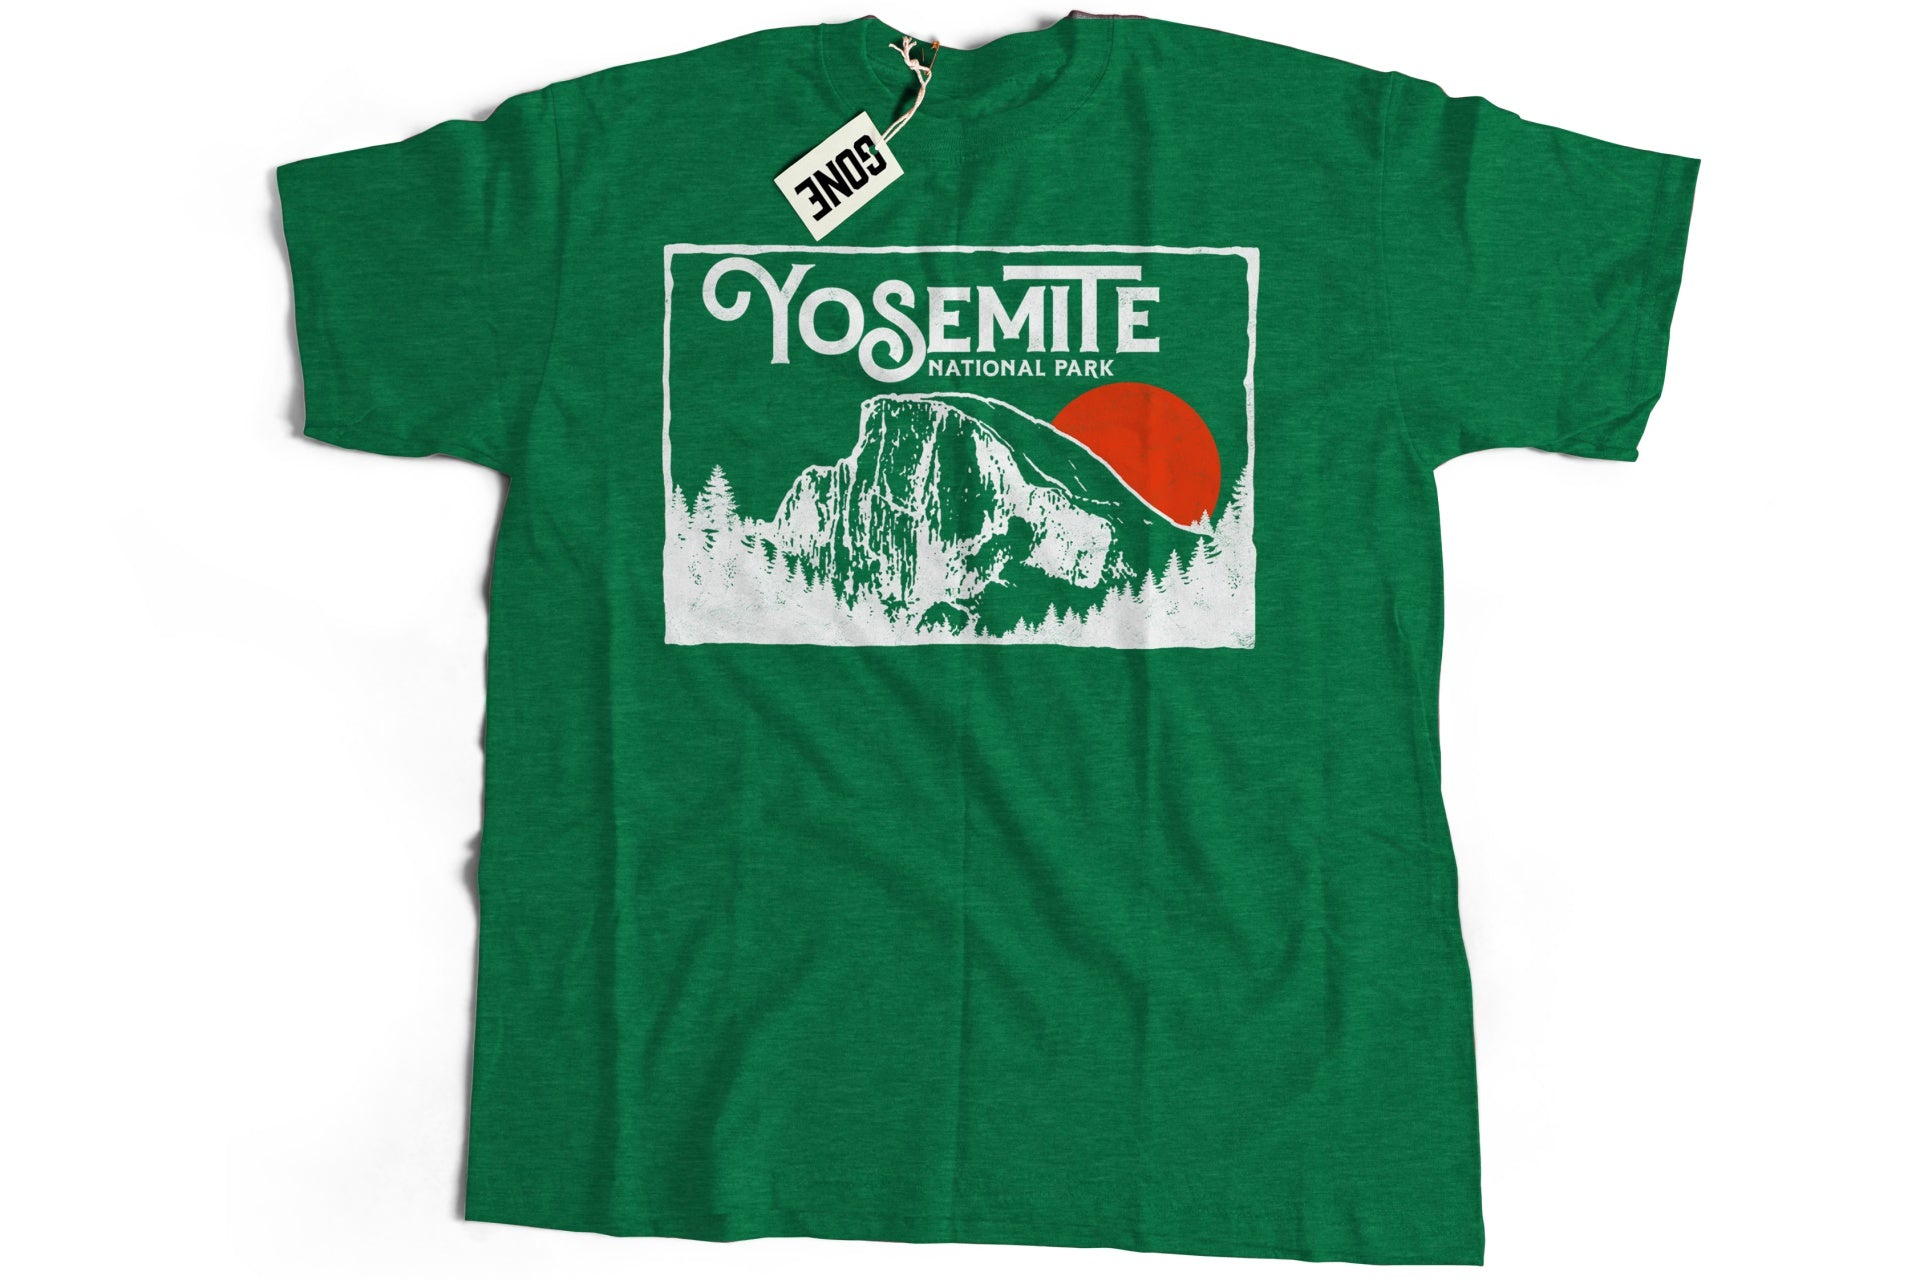 Retro Yosemite National Park Half Dome Vintage 80s Style Short-Sleeve Unisex T-Shirt